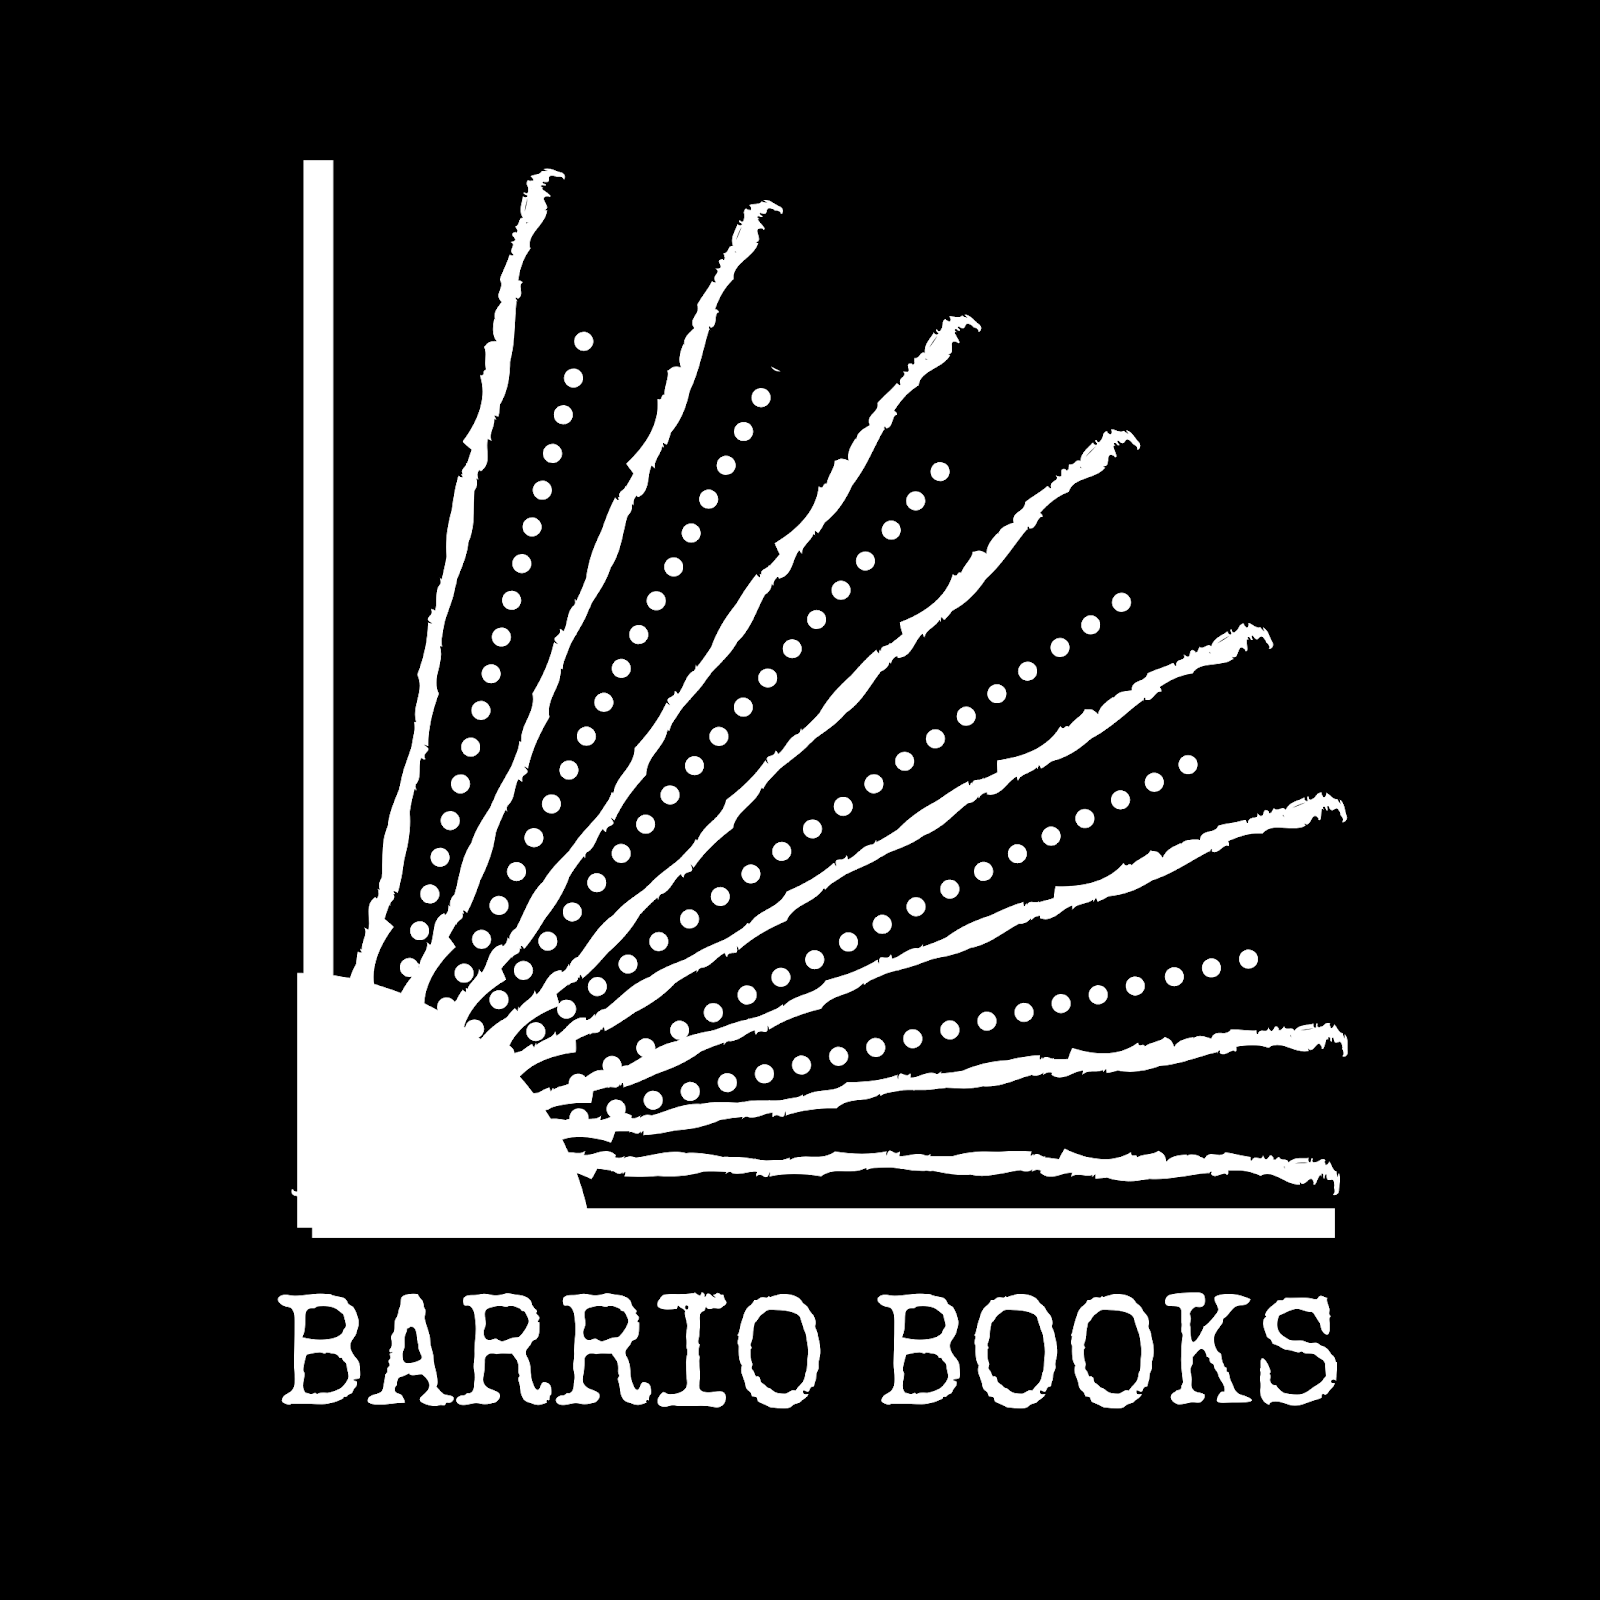 Barrio Books logo